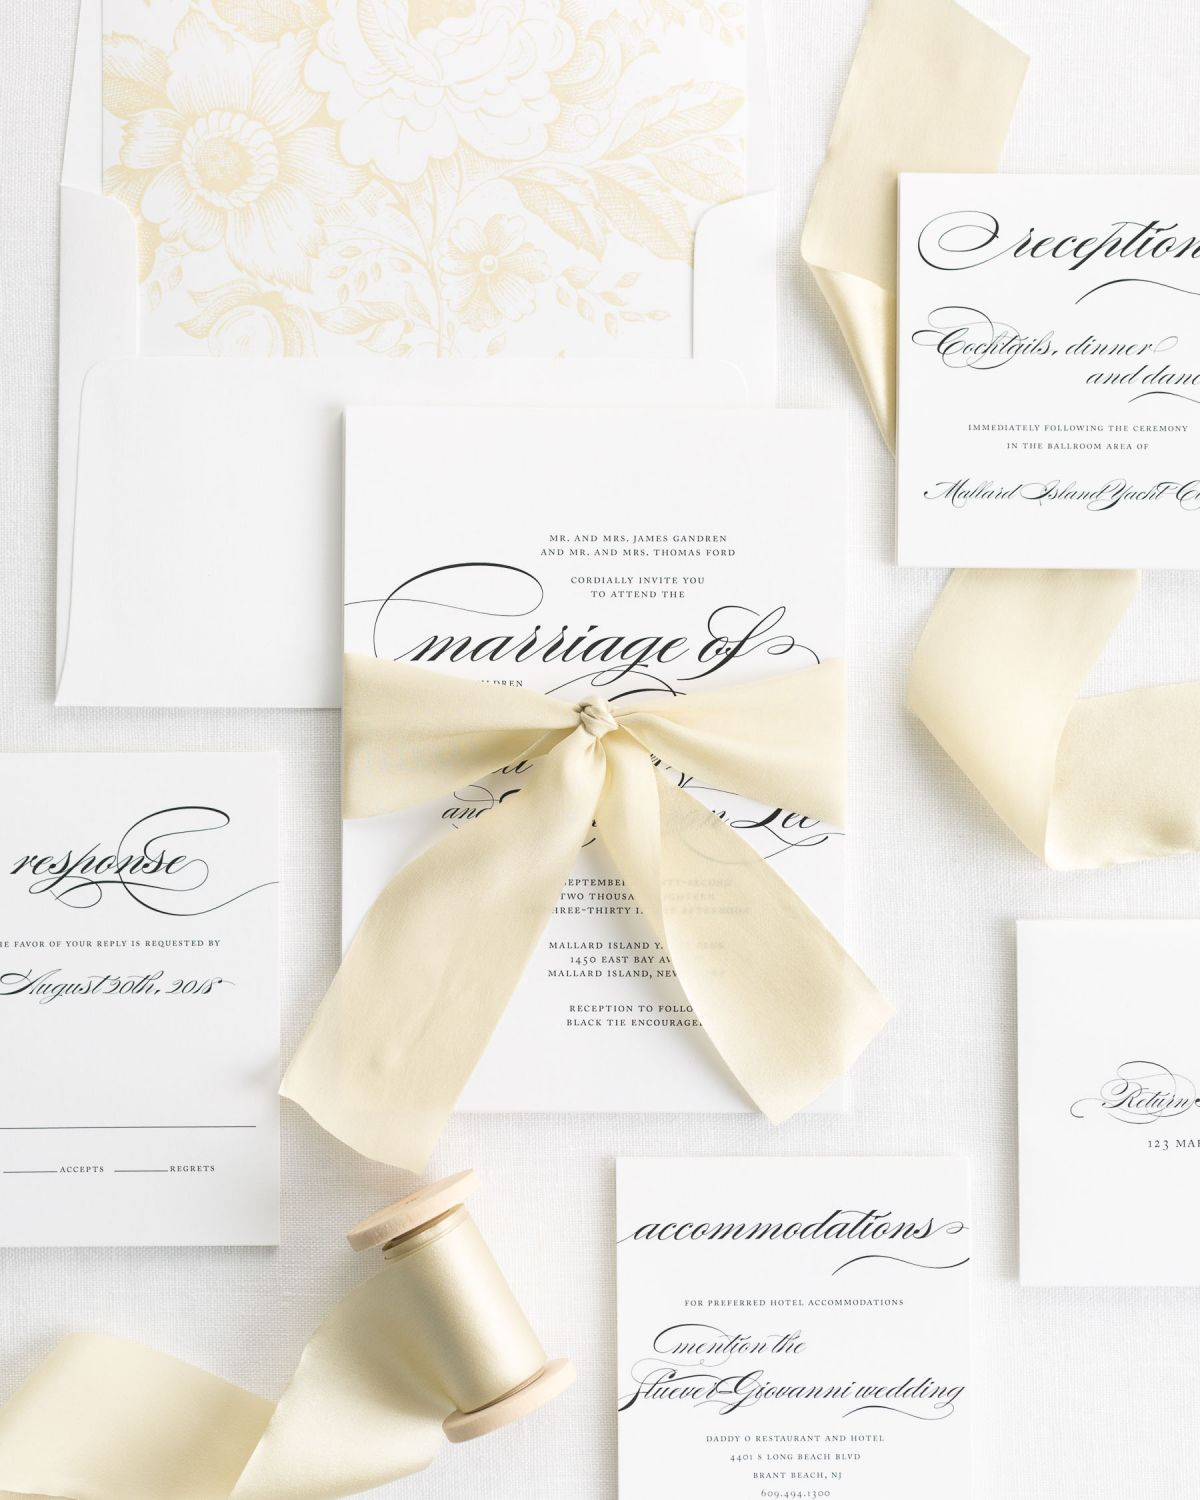 Complete Wedding Invitation Suite with Silk Ribbon